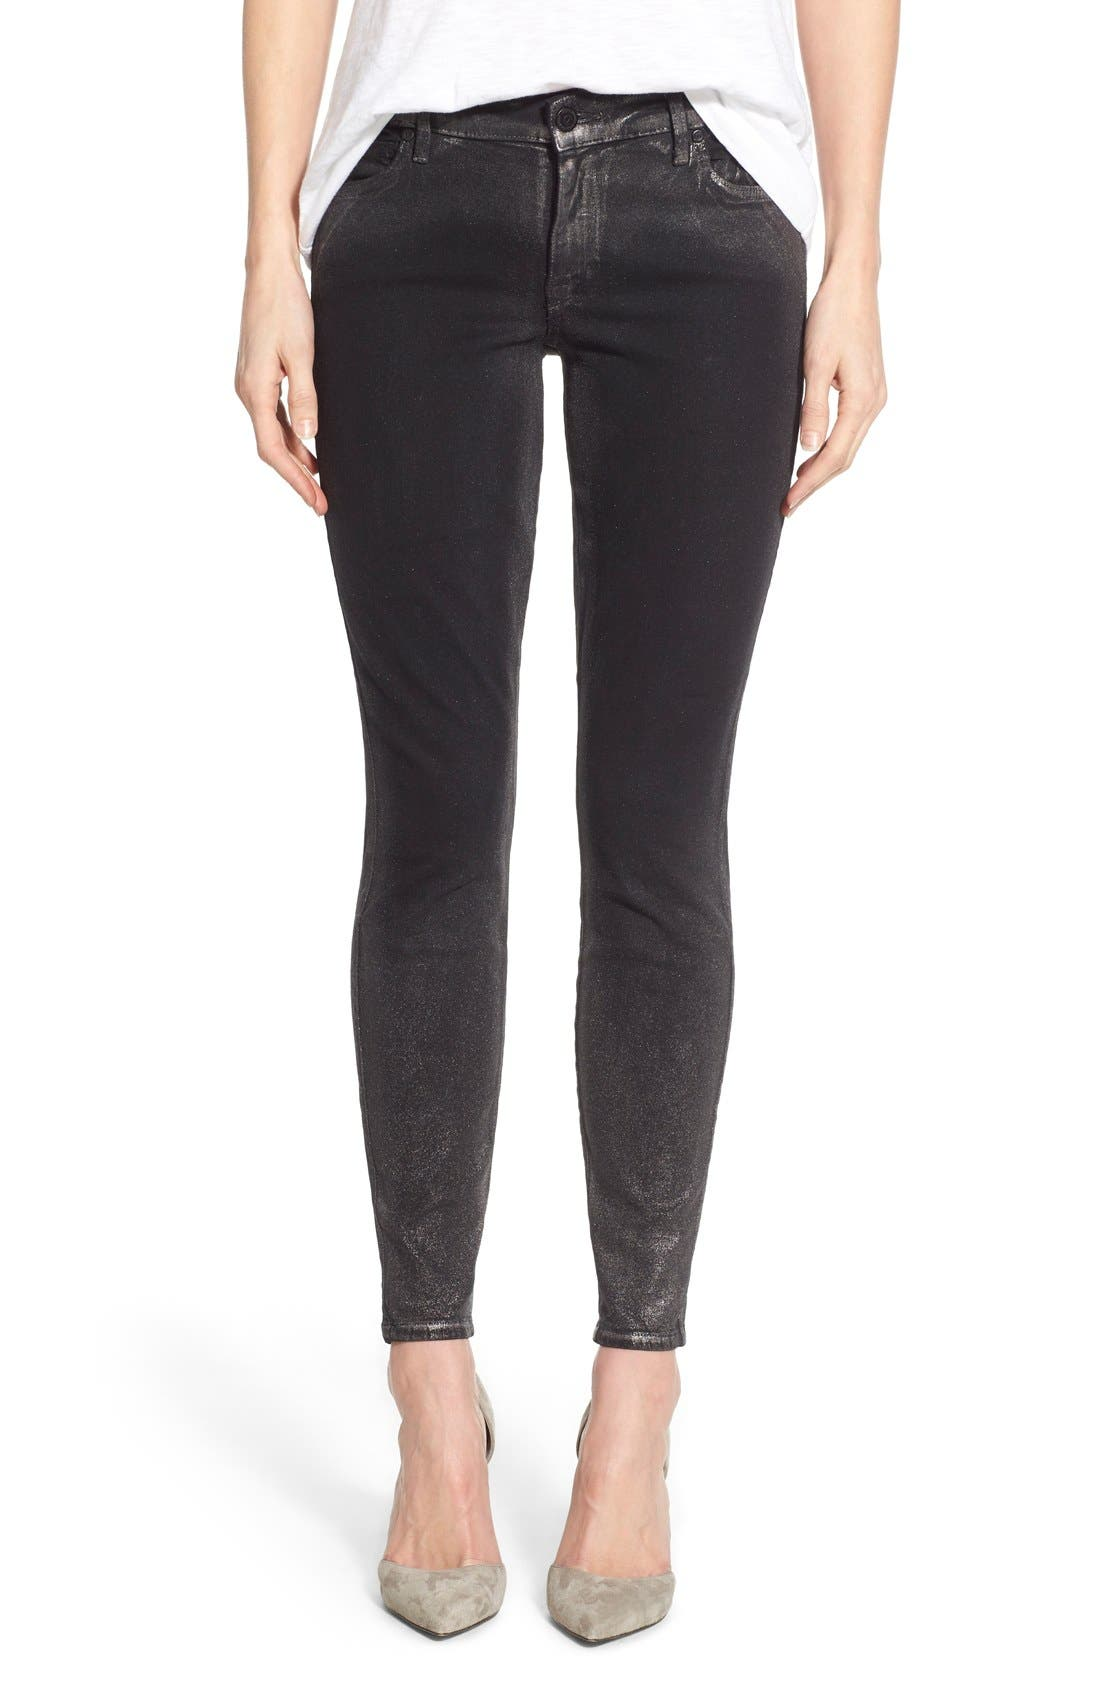 Alternate Image 1 Selected - CJ by Cookie Johnson 'Wisdom' Brushed Foil Skinny Jeans (Pewter)